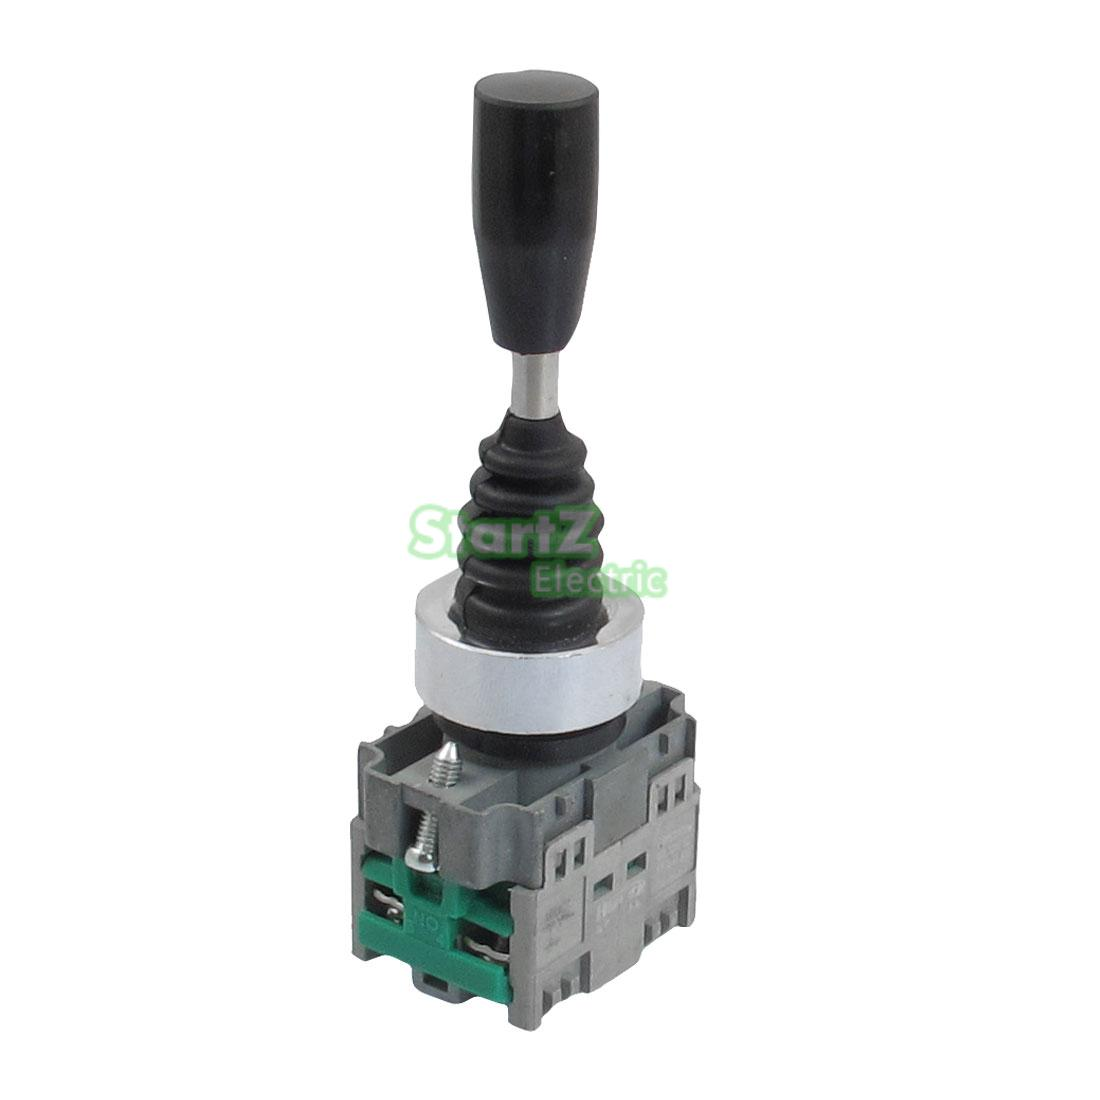 22mm 2NO 2Position Self-locking Type Monolever Joystick Switch Cross Button Switch HKL-D12 tn2ss rotary button switch gear selection type 2 22mm with self locking